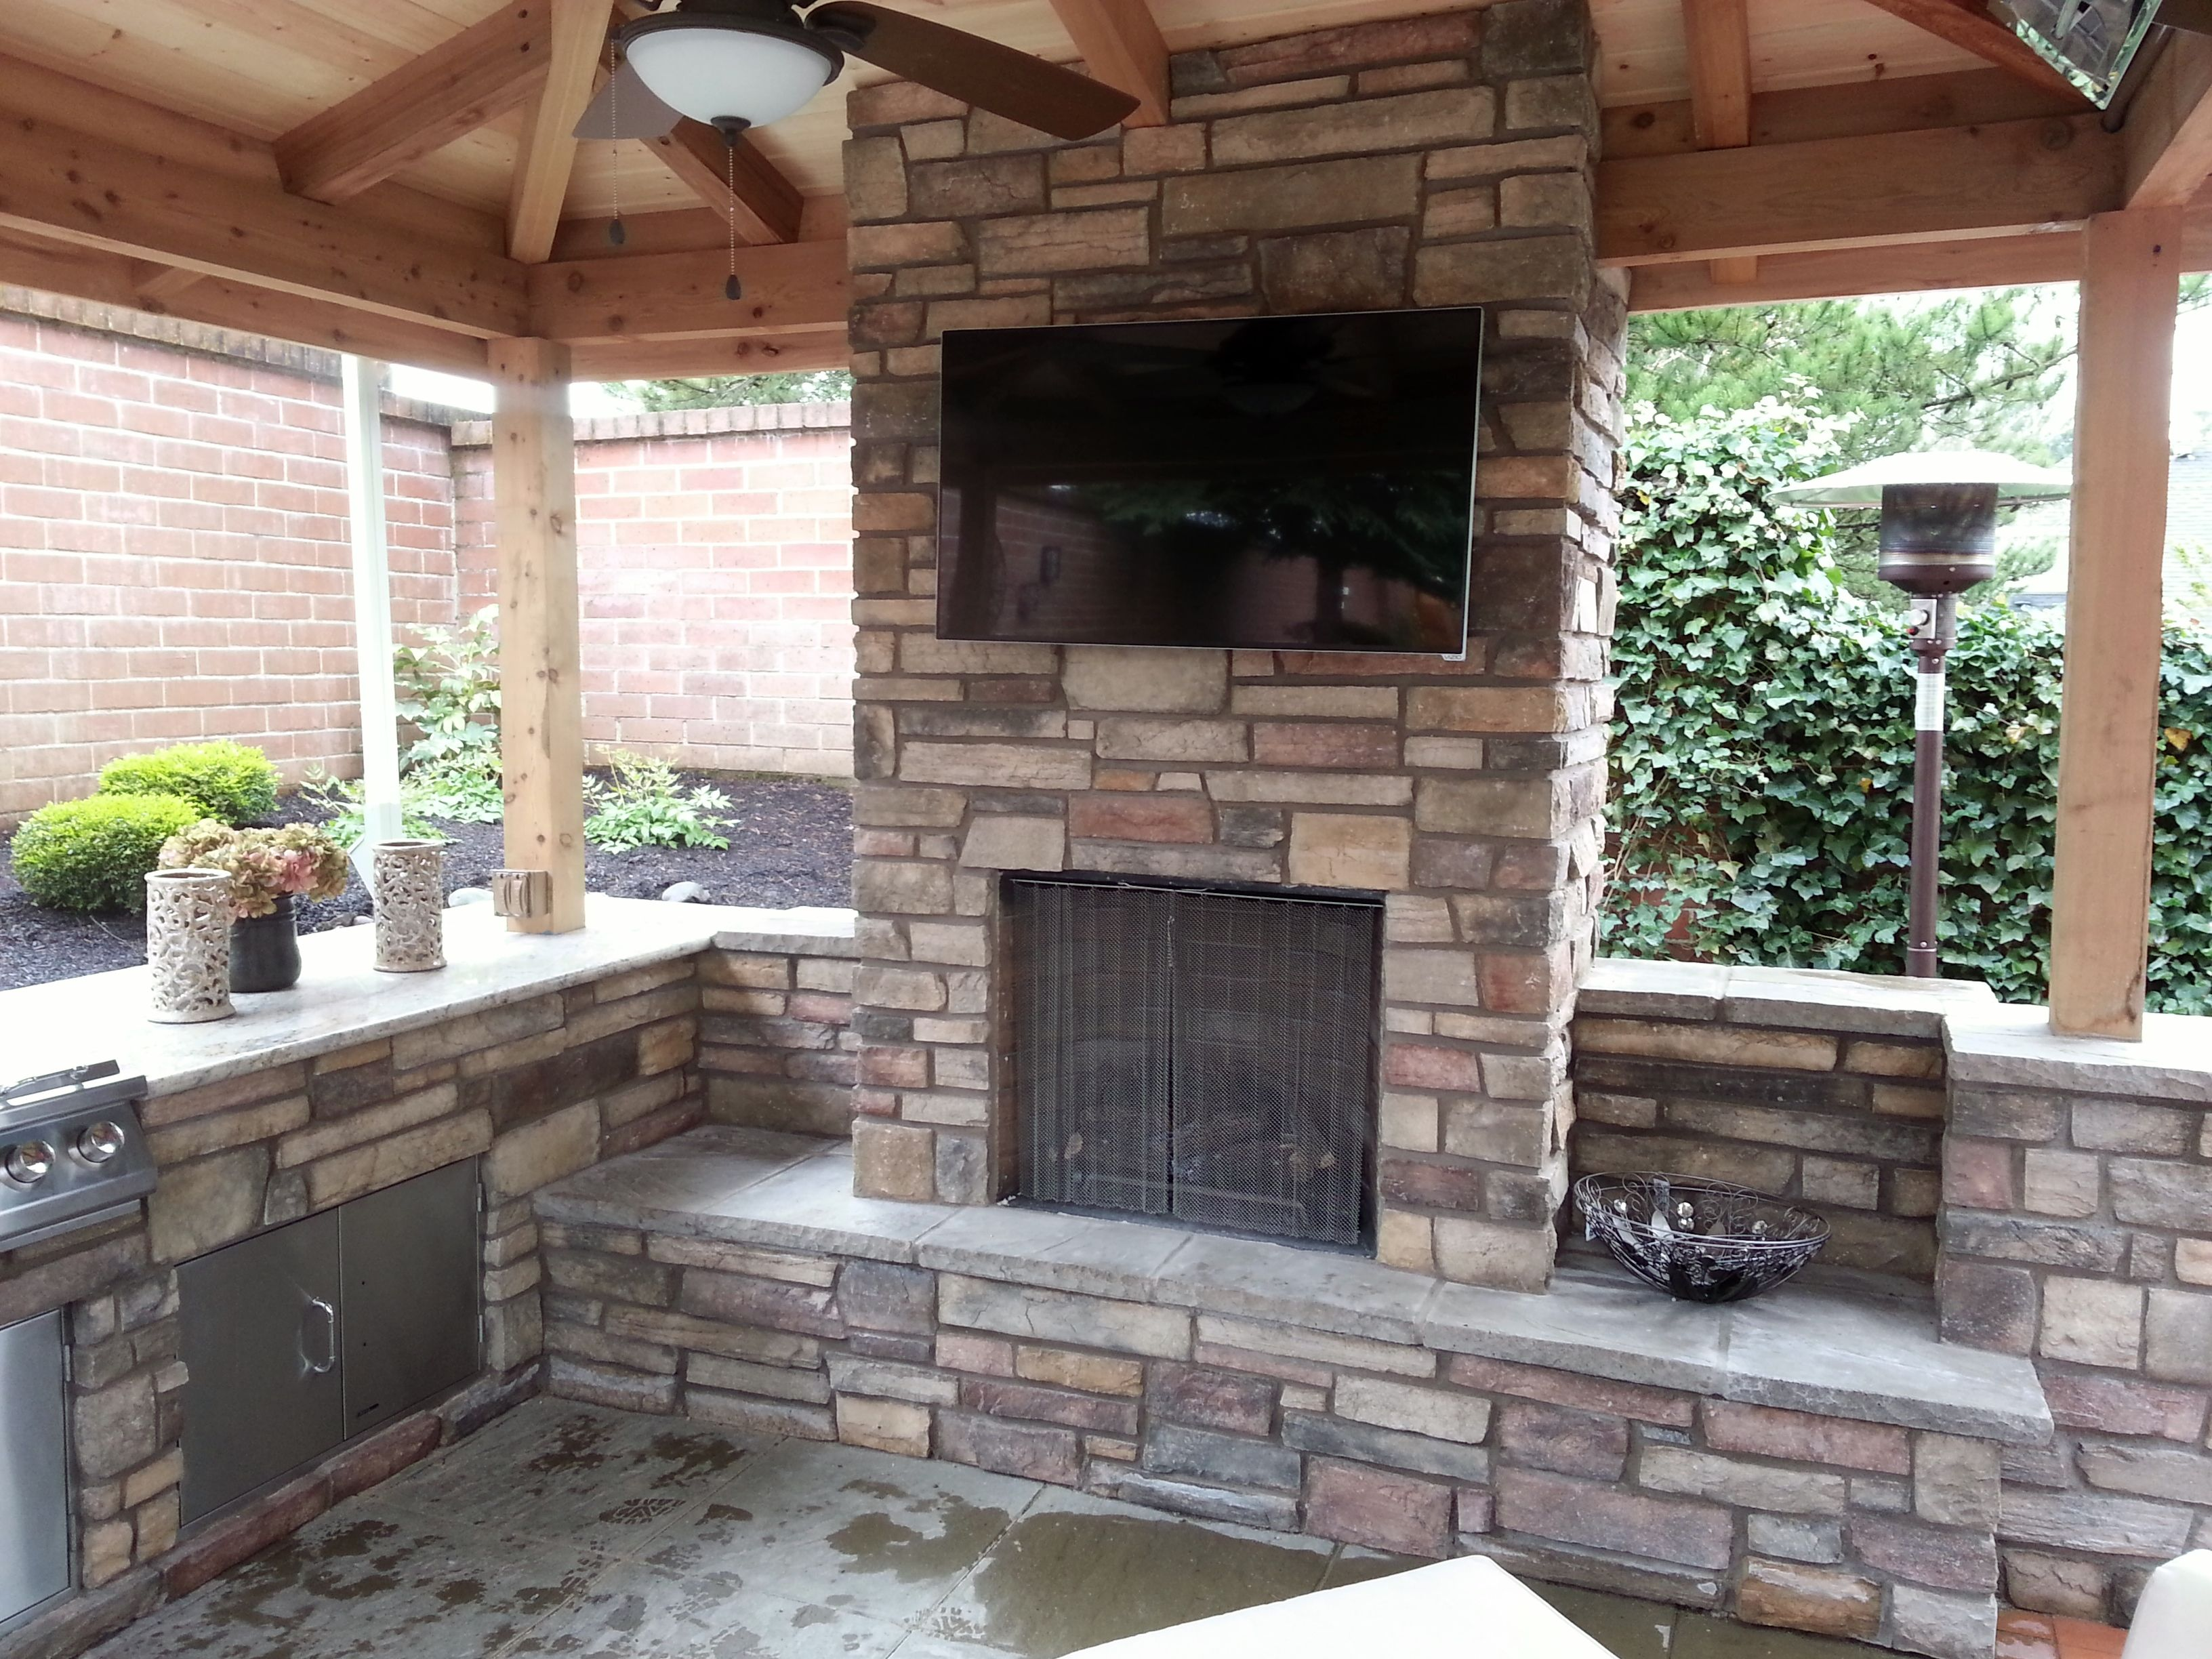 Of Outdoor Fireplaces Outdoor Fireplace Outdoor Living Outdoor Kitchen Covered Patio